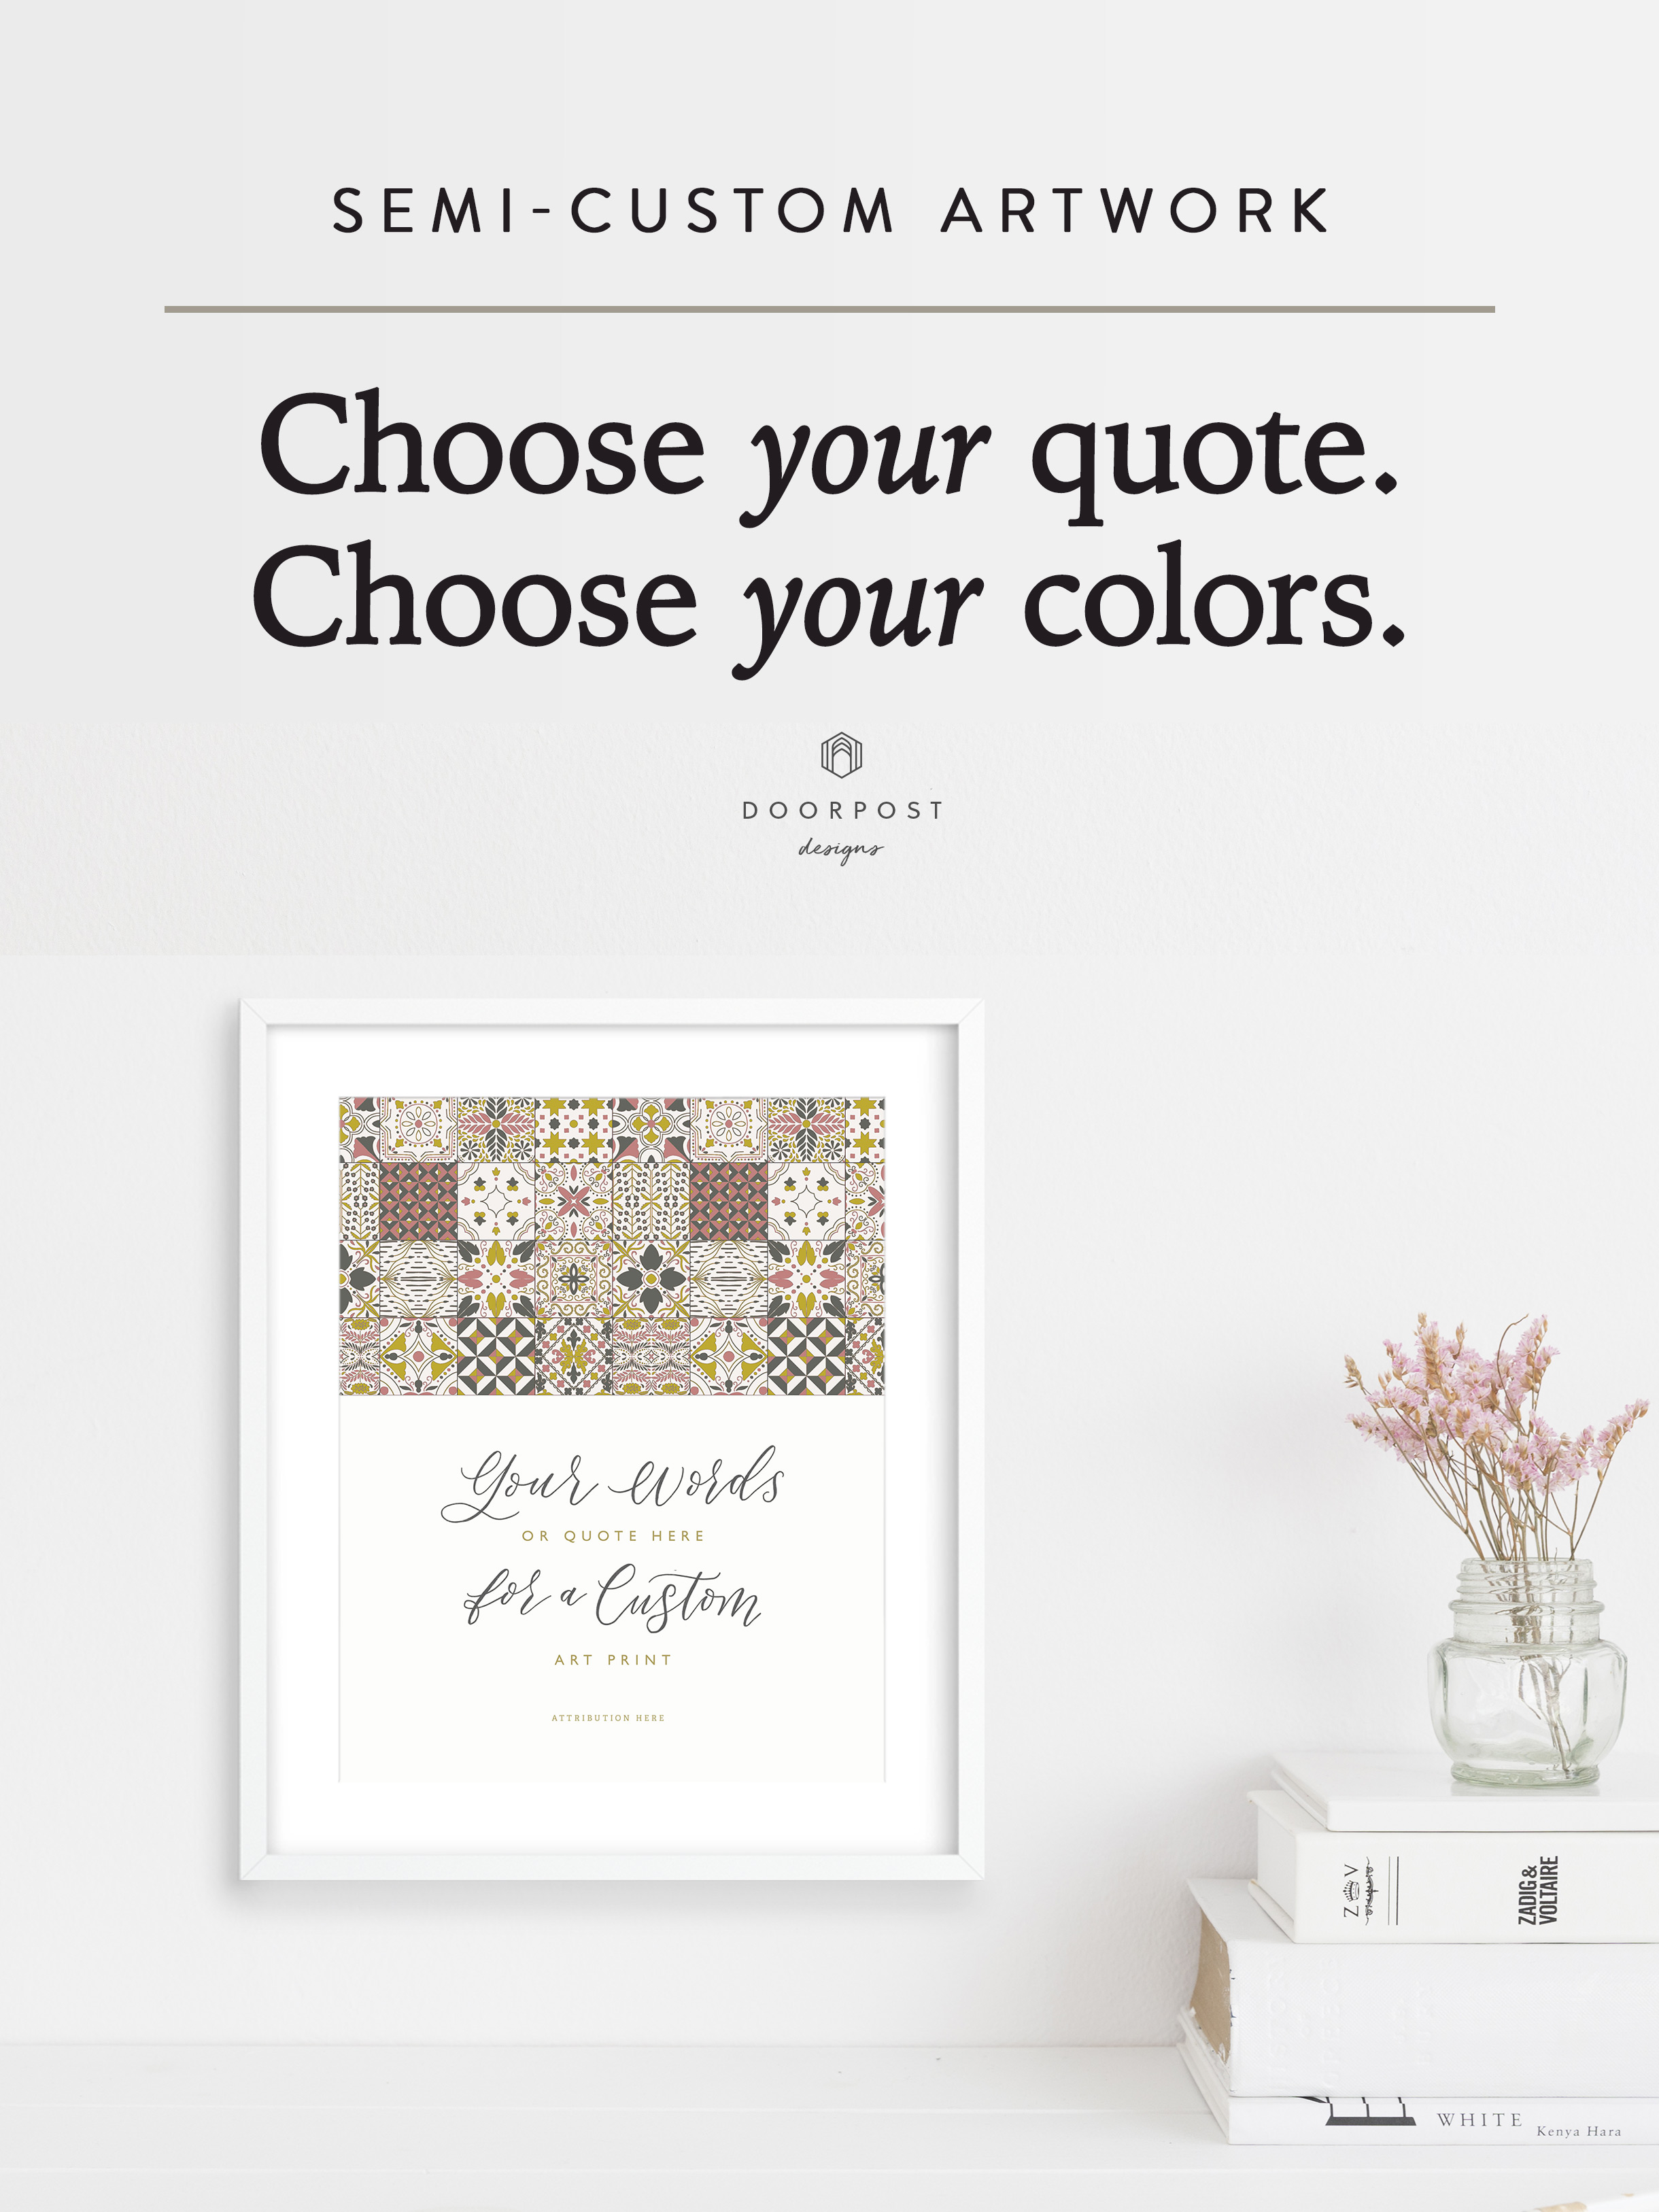 Choose your quote; choose your colors. Customizeable wall art.